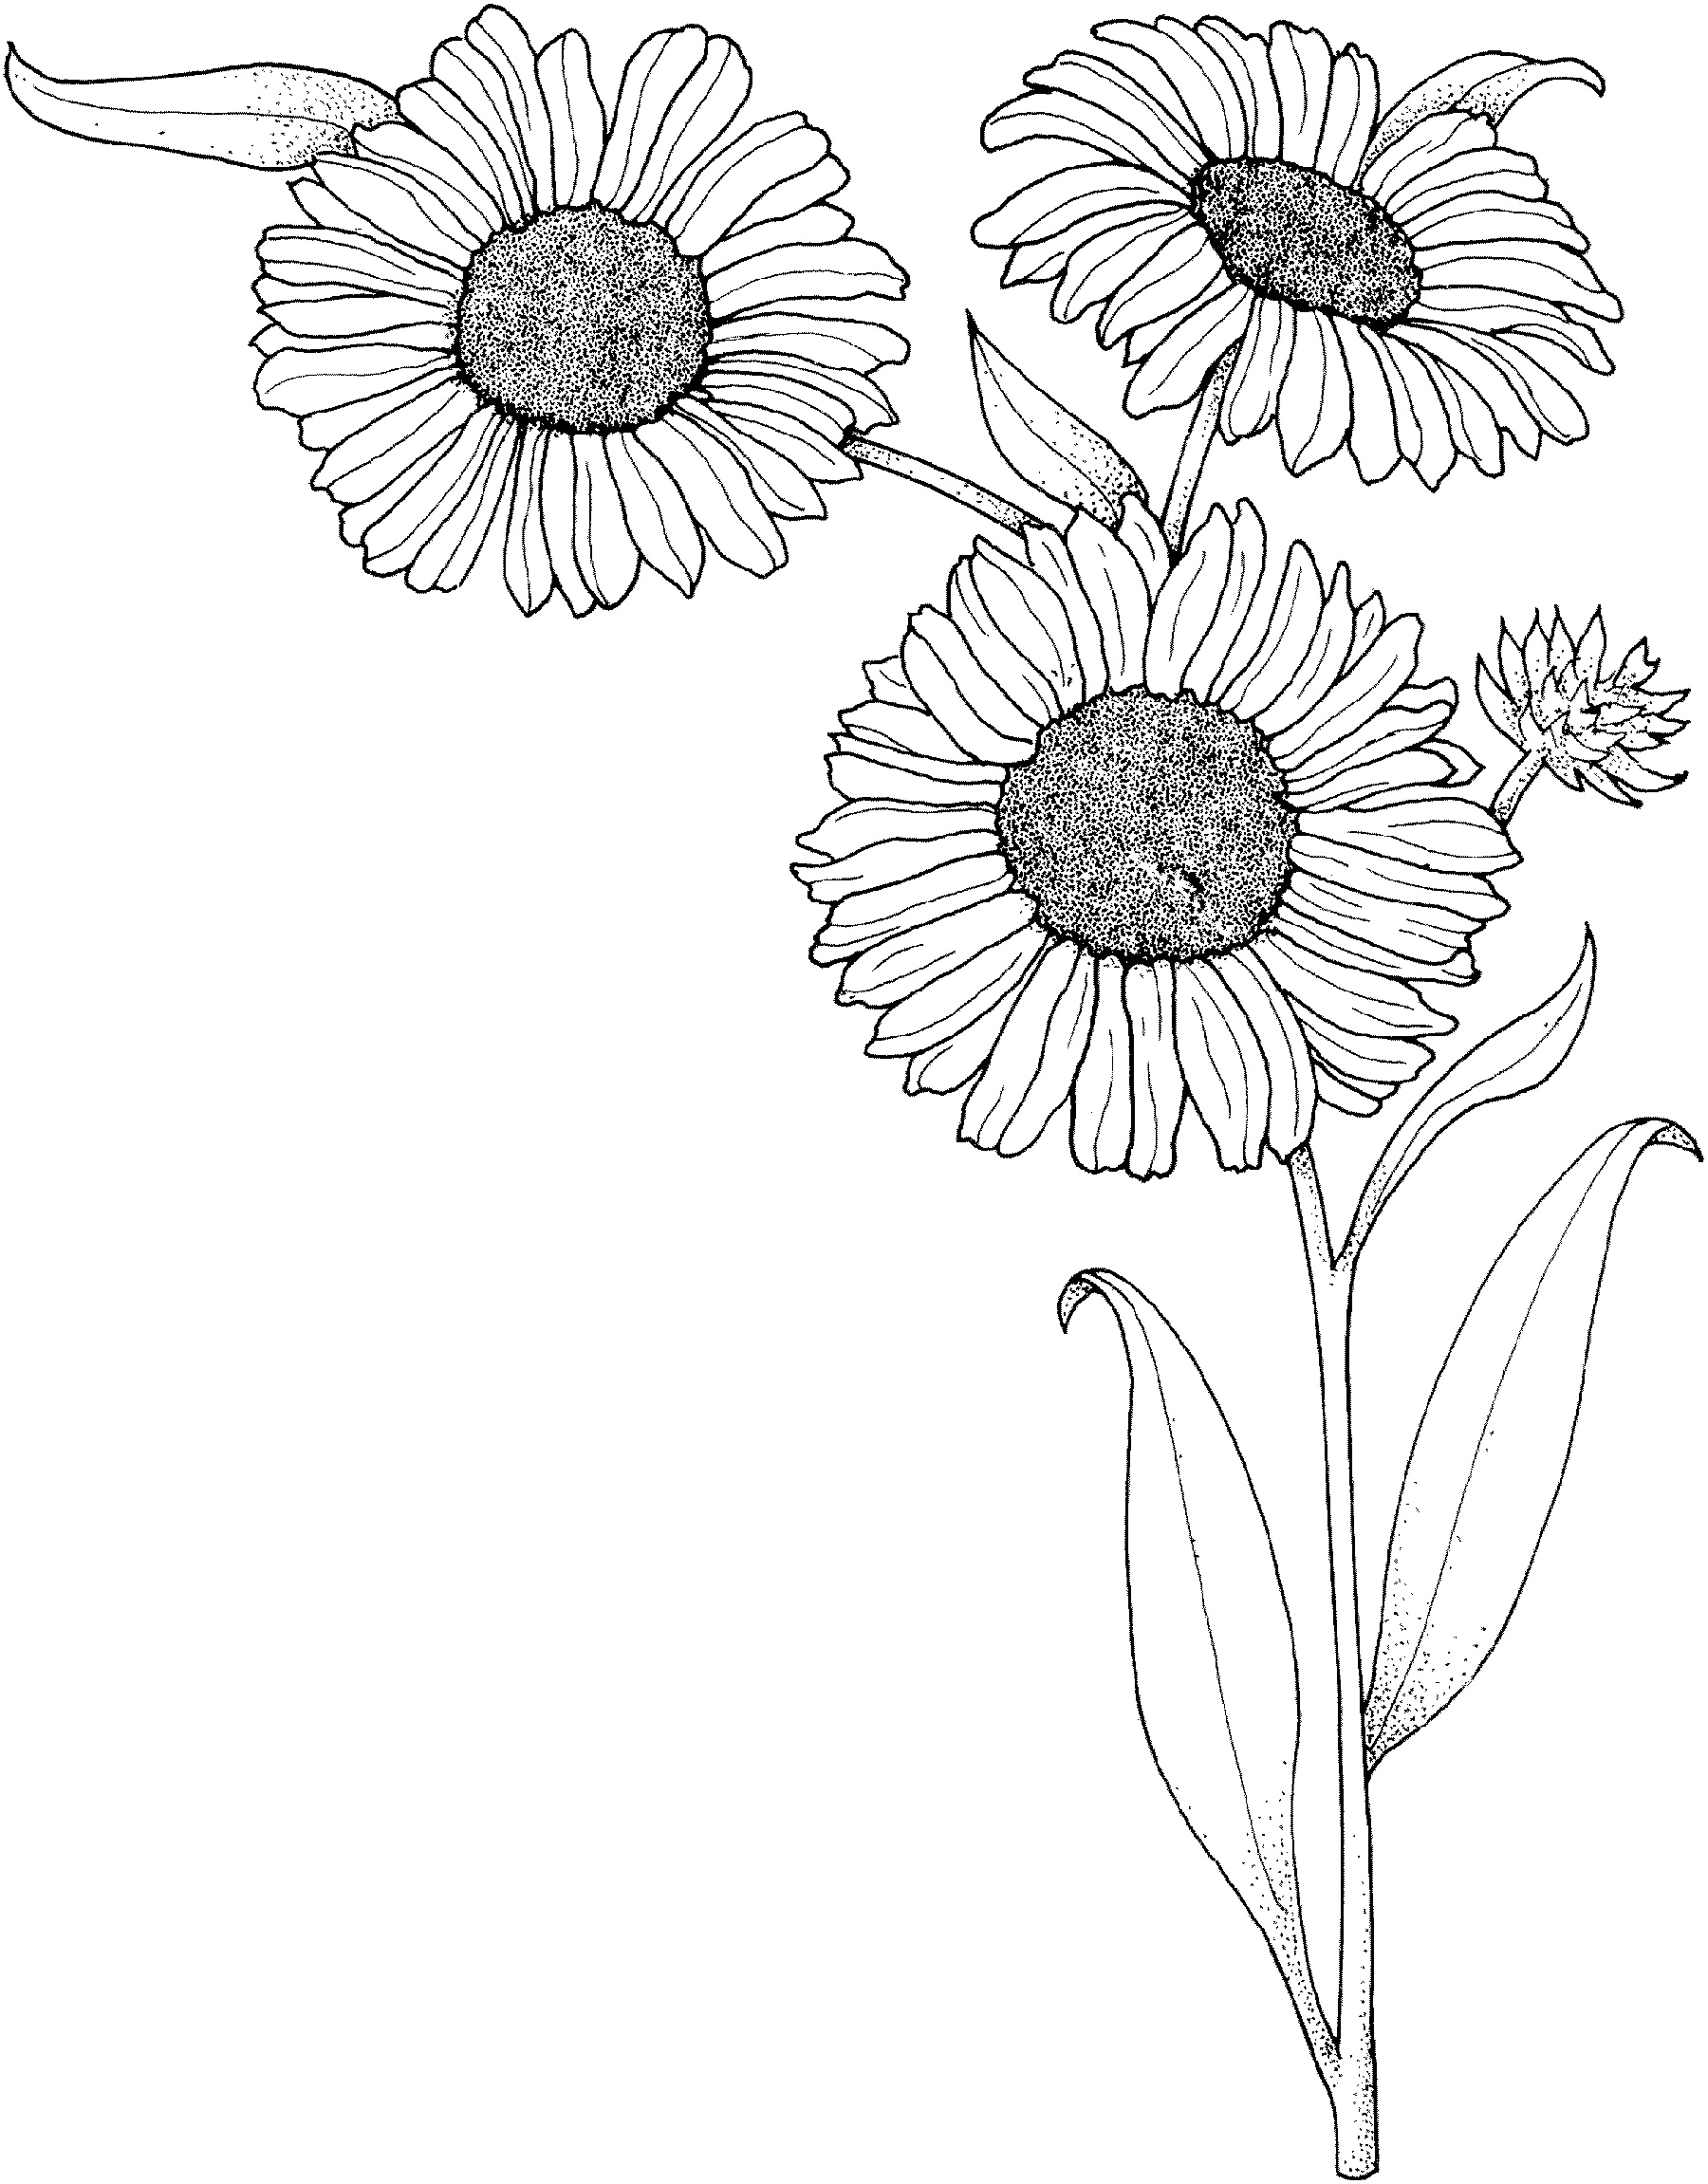 coloring sunflower picture sunflower coloring page k5 worksheets coloring picture sunflower